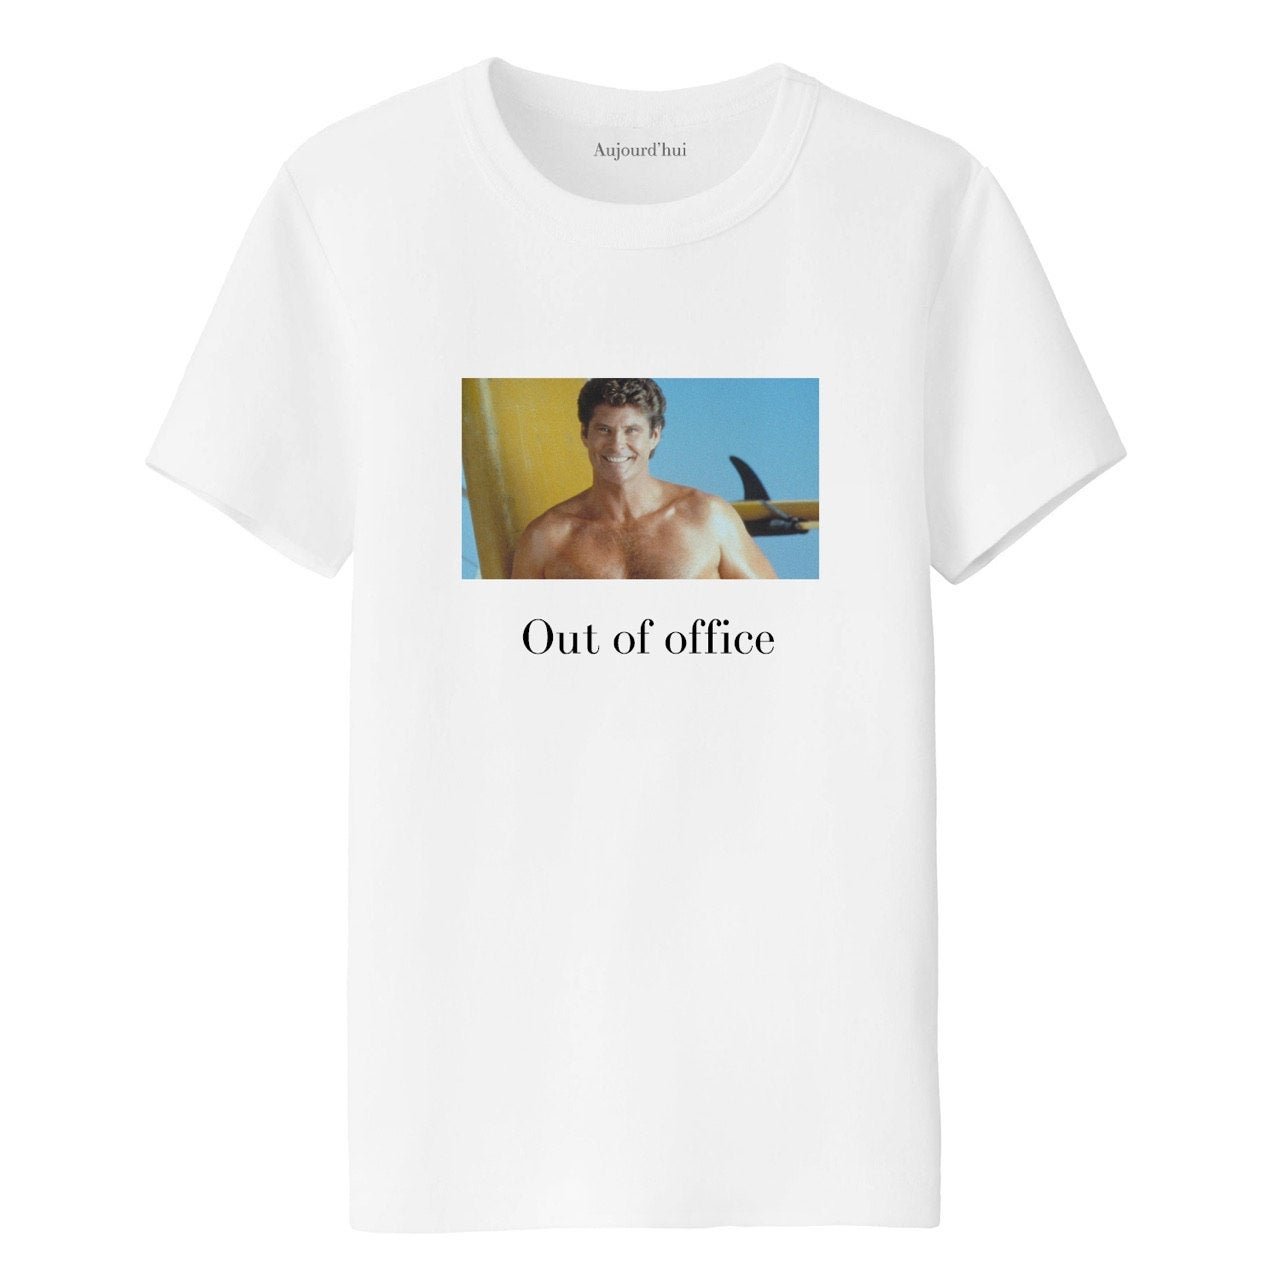 Image of Out of Office T-shirt - Mitch Buchannon